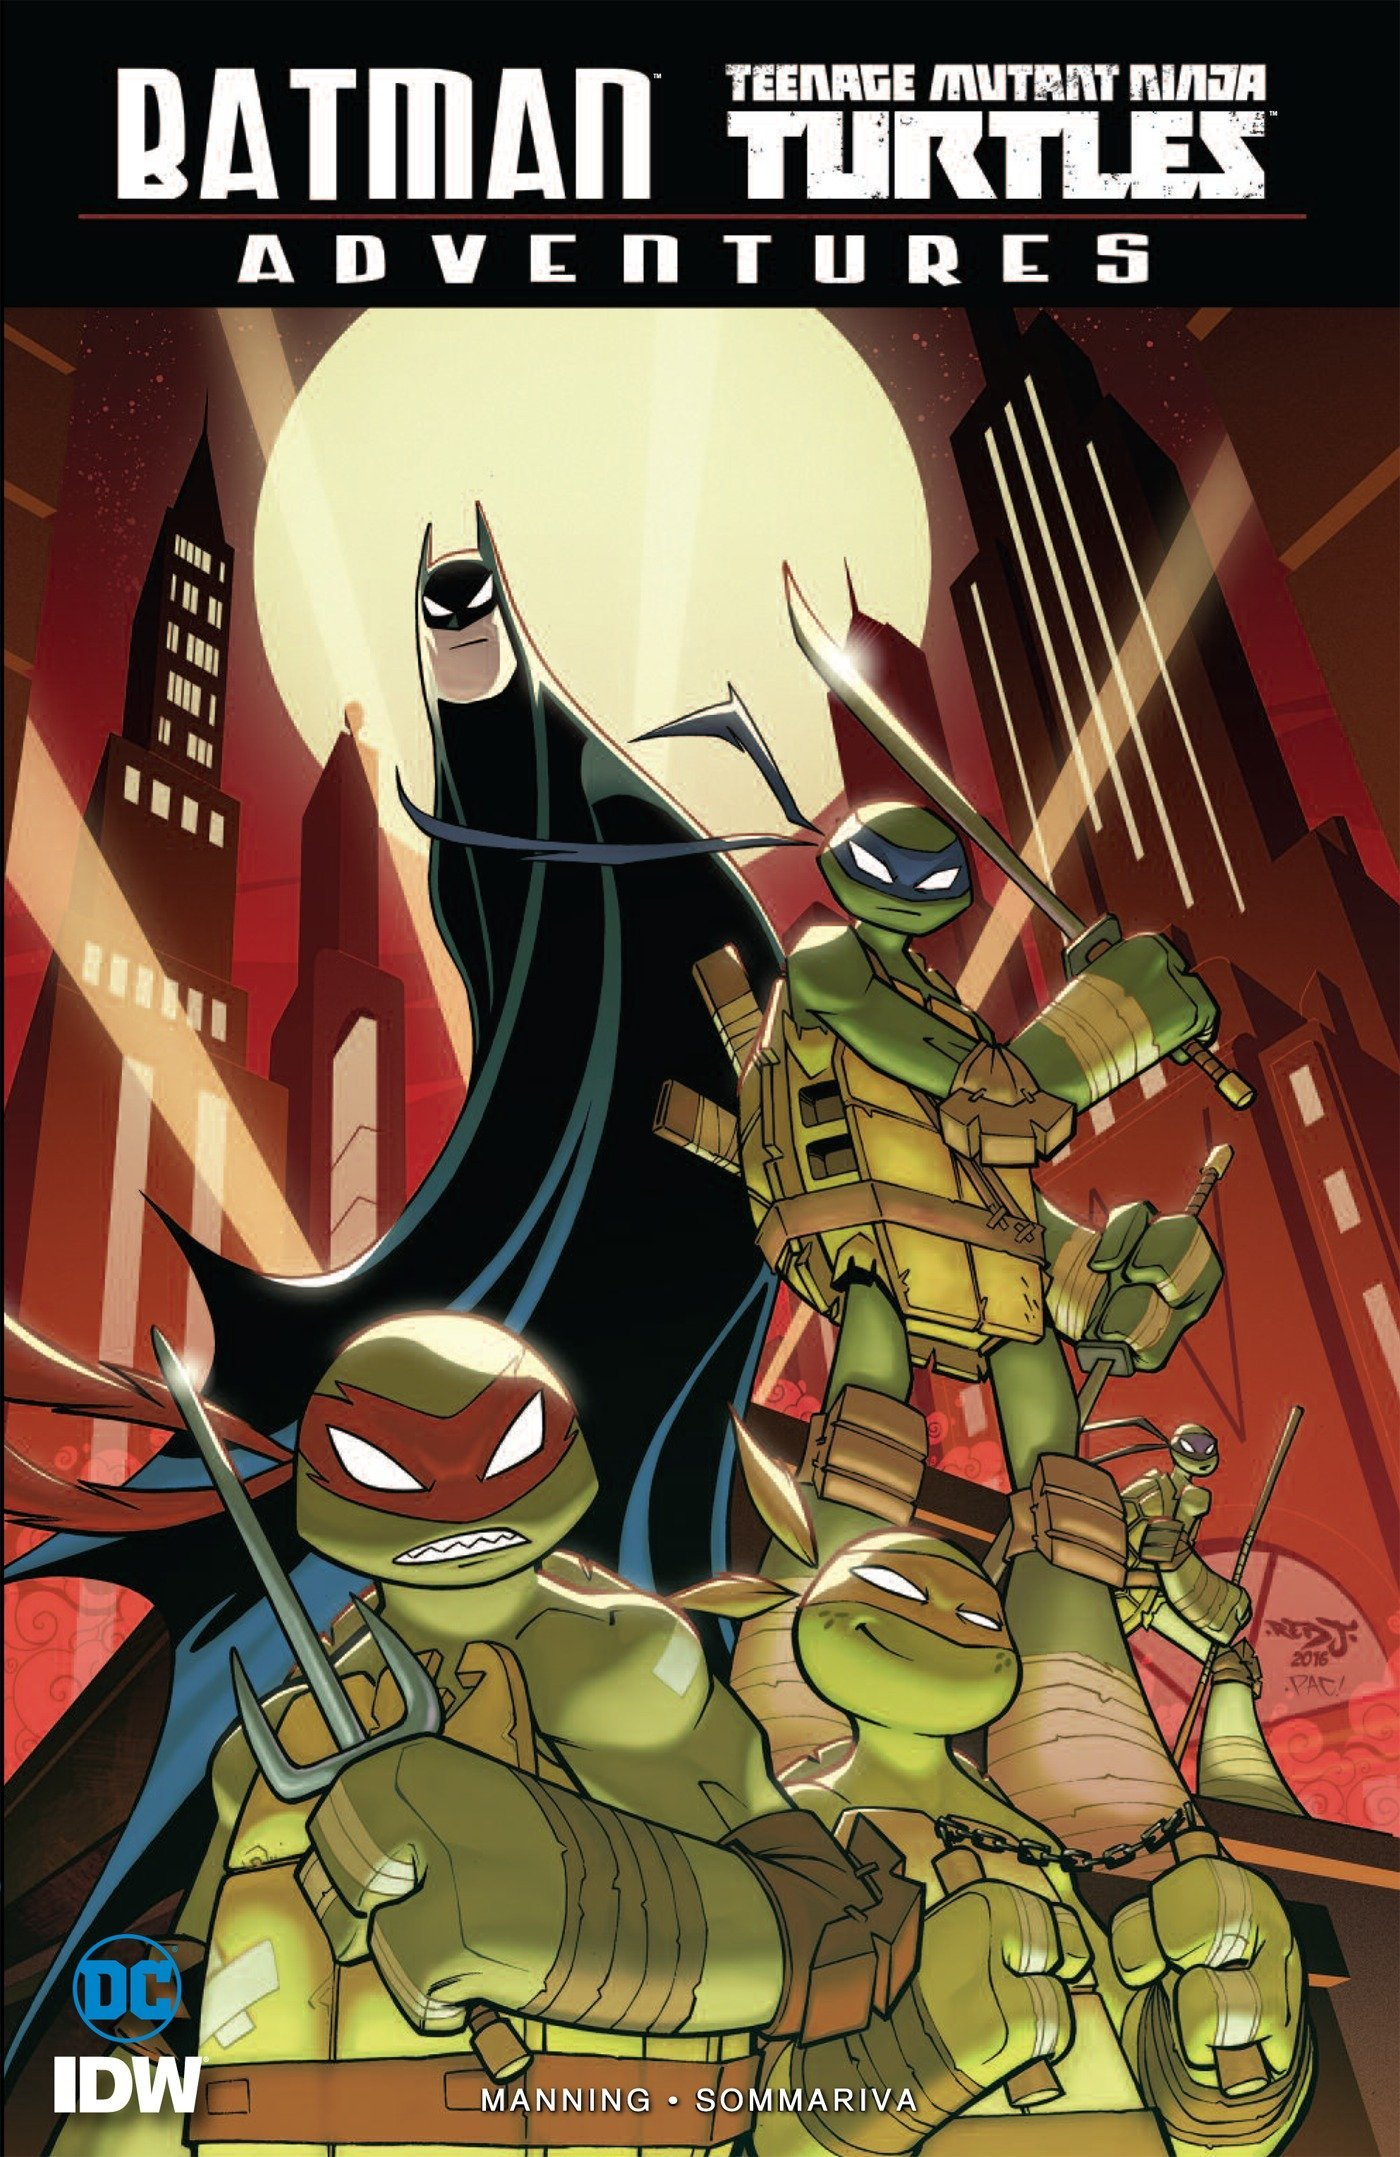 Amazon.com: Batman/Teenage Mutant Ninja Turtles Adventures ...